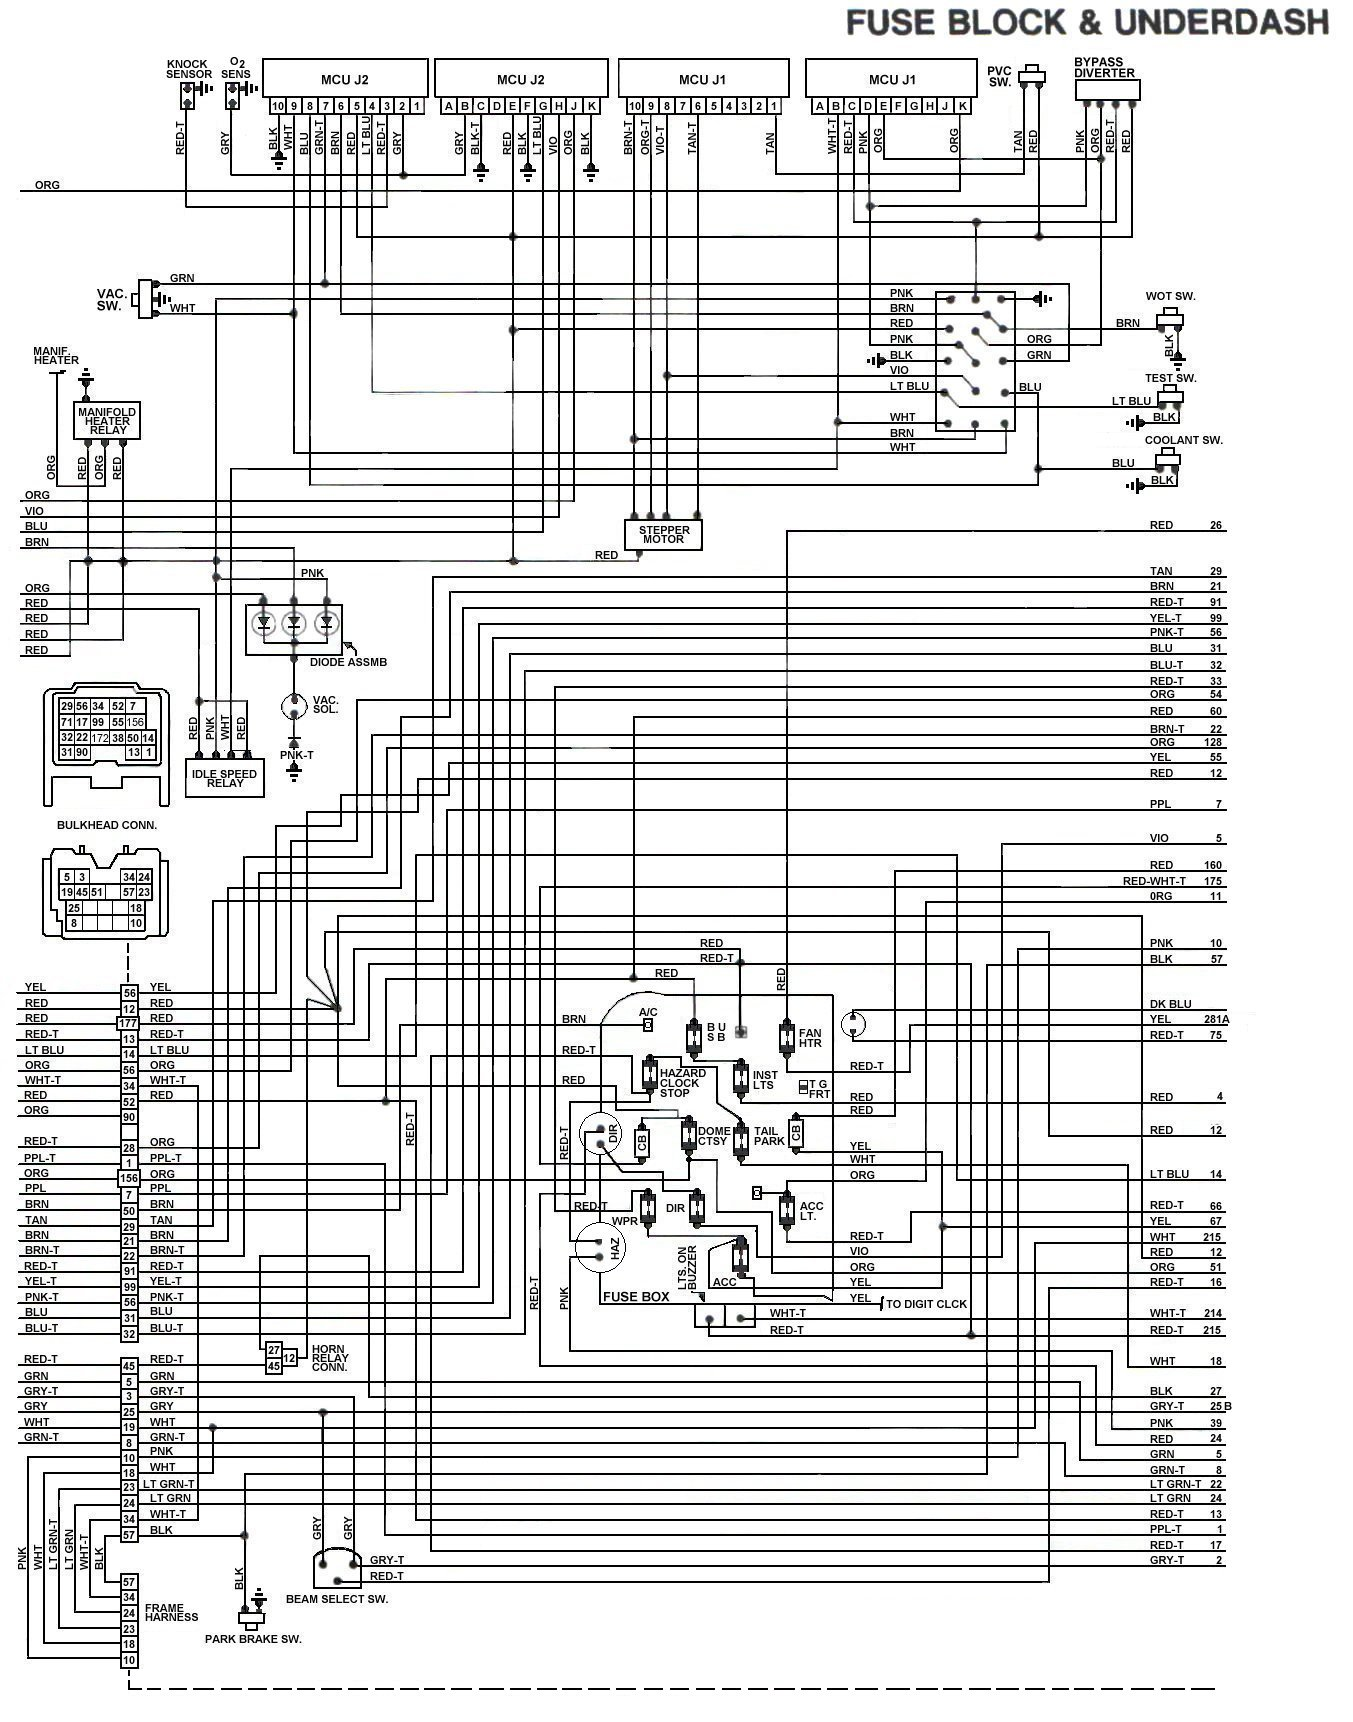 83_FSJ_WiringDiagram_FuseBlock Underdash tom 'oljeep' collins fsj wiring page 1952 Chevy Truck Wiring Harness at creativeand.co